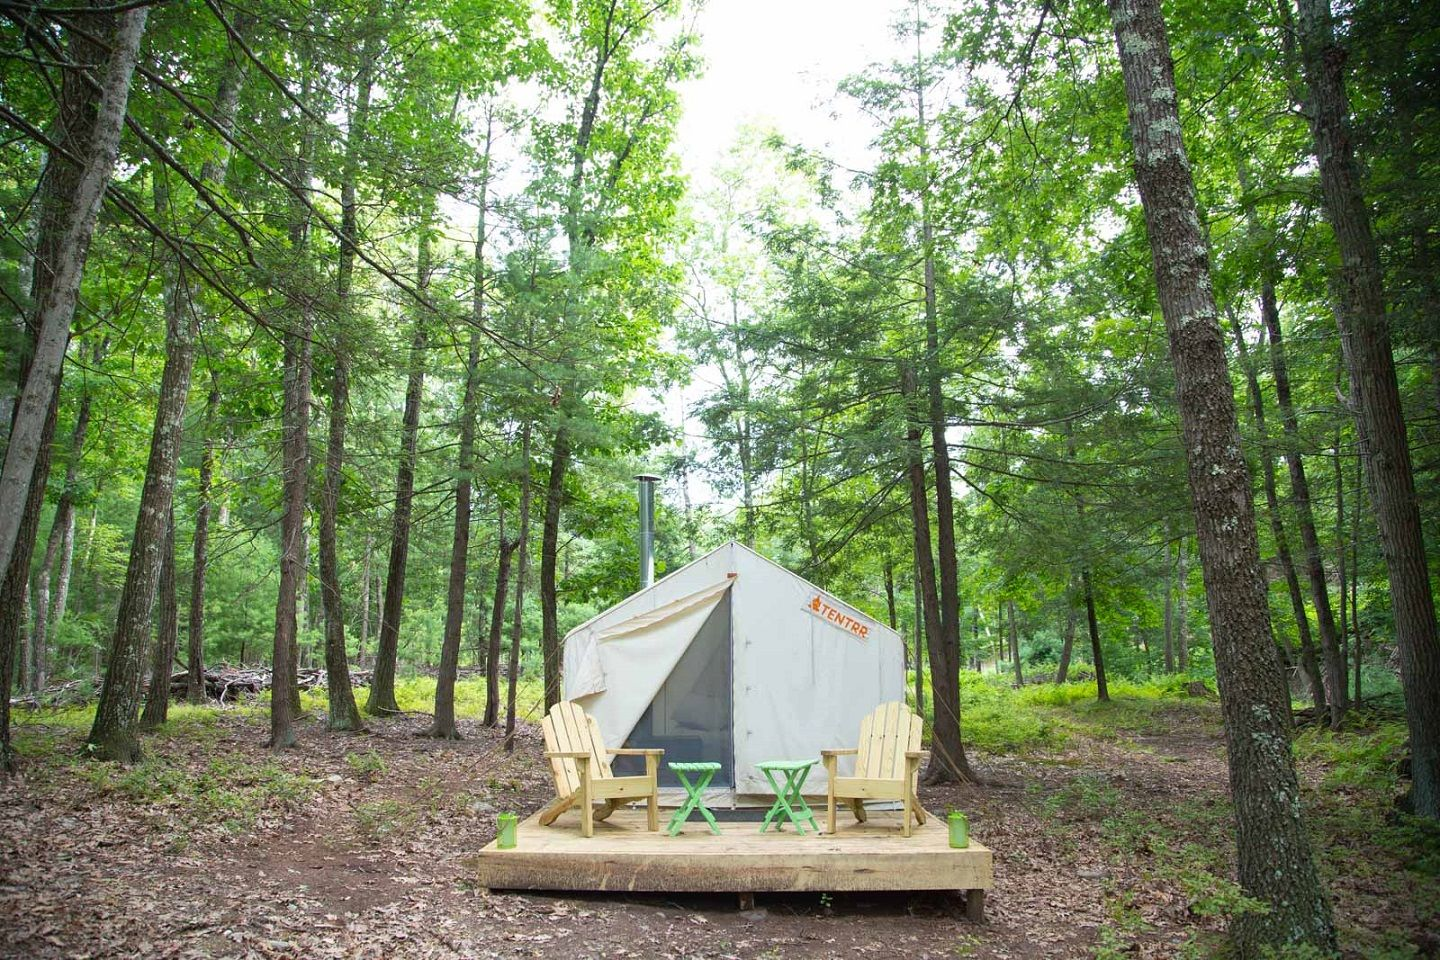 Tentrr tent and Adirondack chairs in the woods.